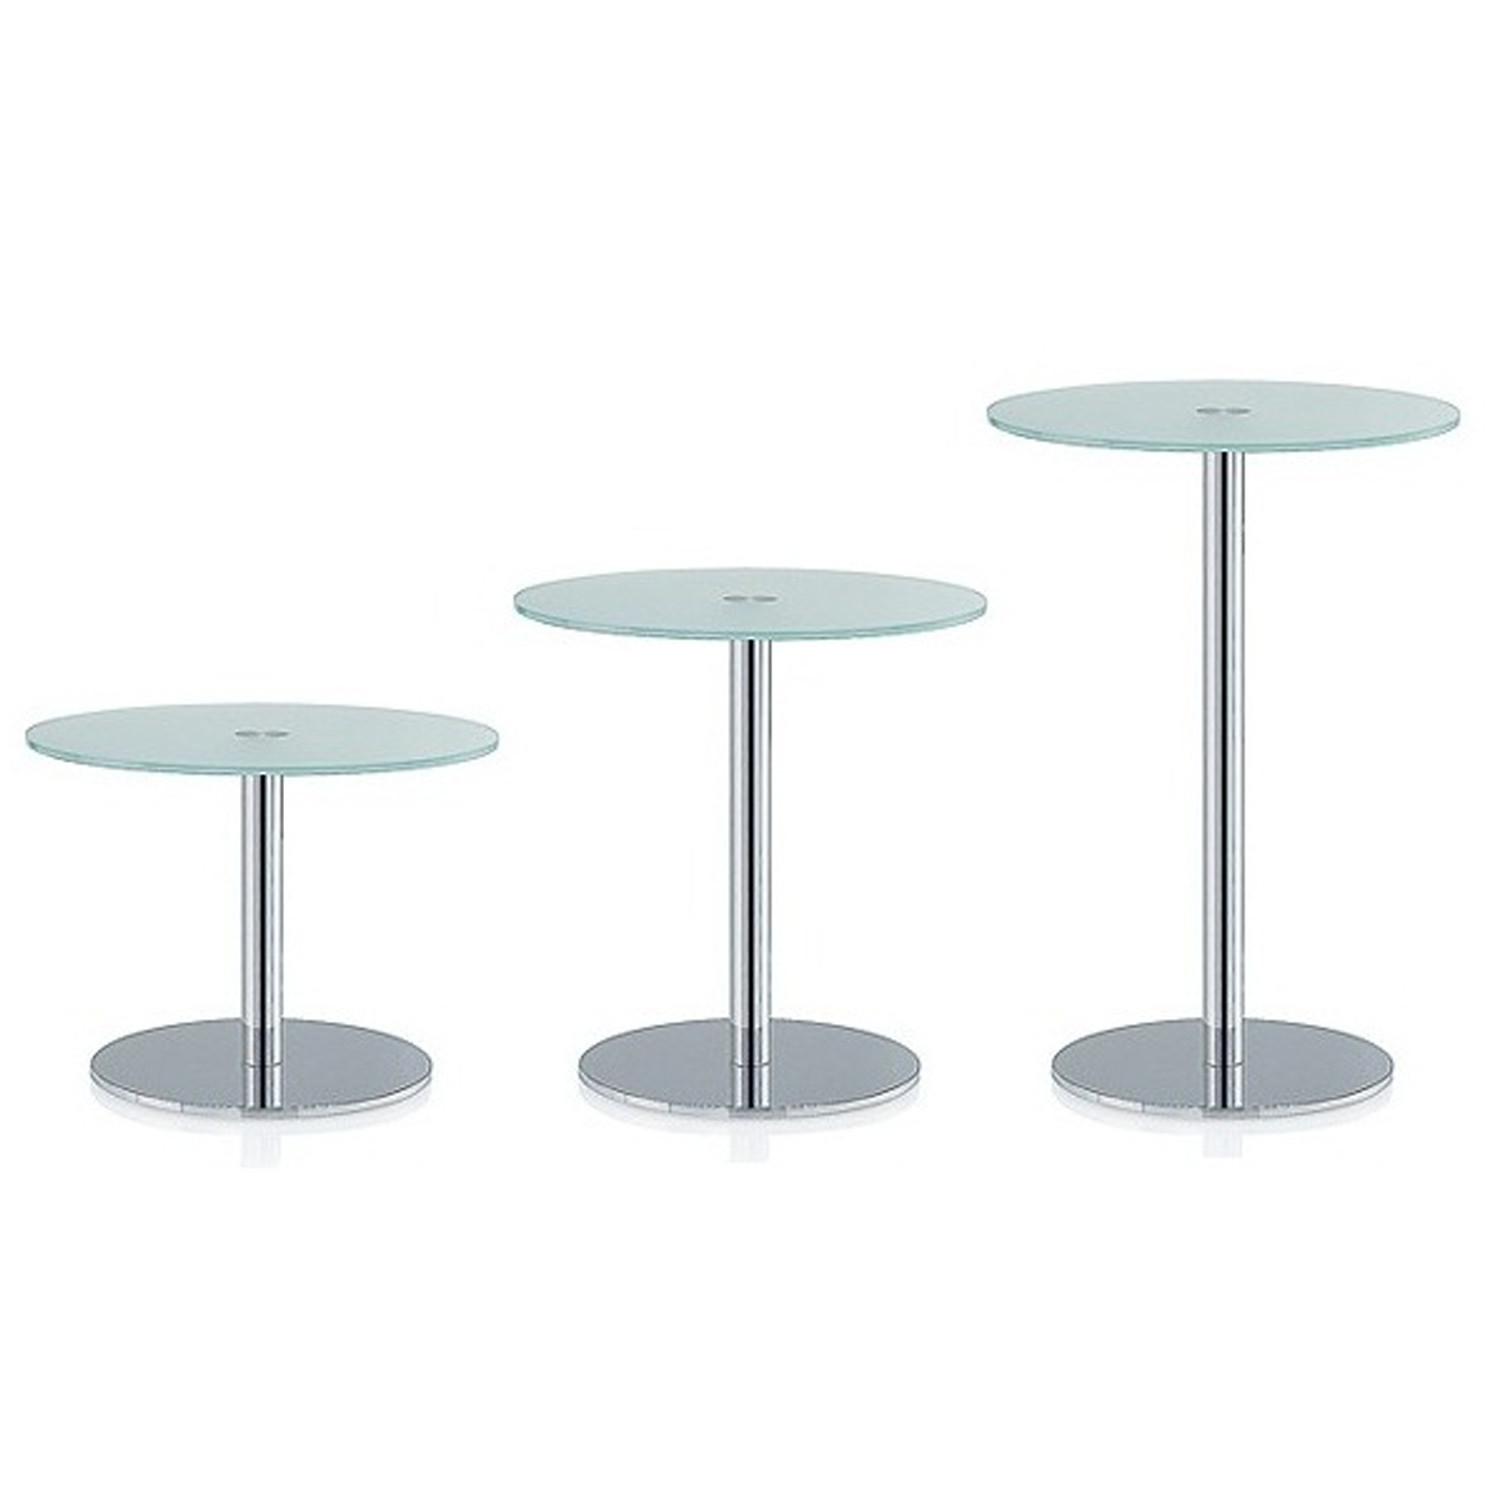 3000 Series - 3060 Tables in various heights